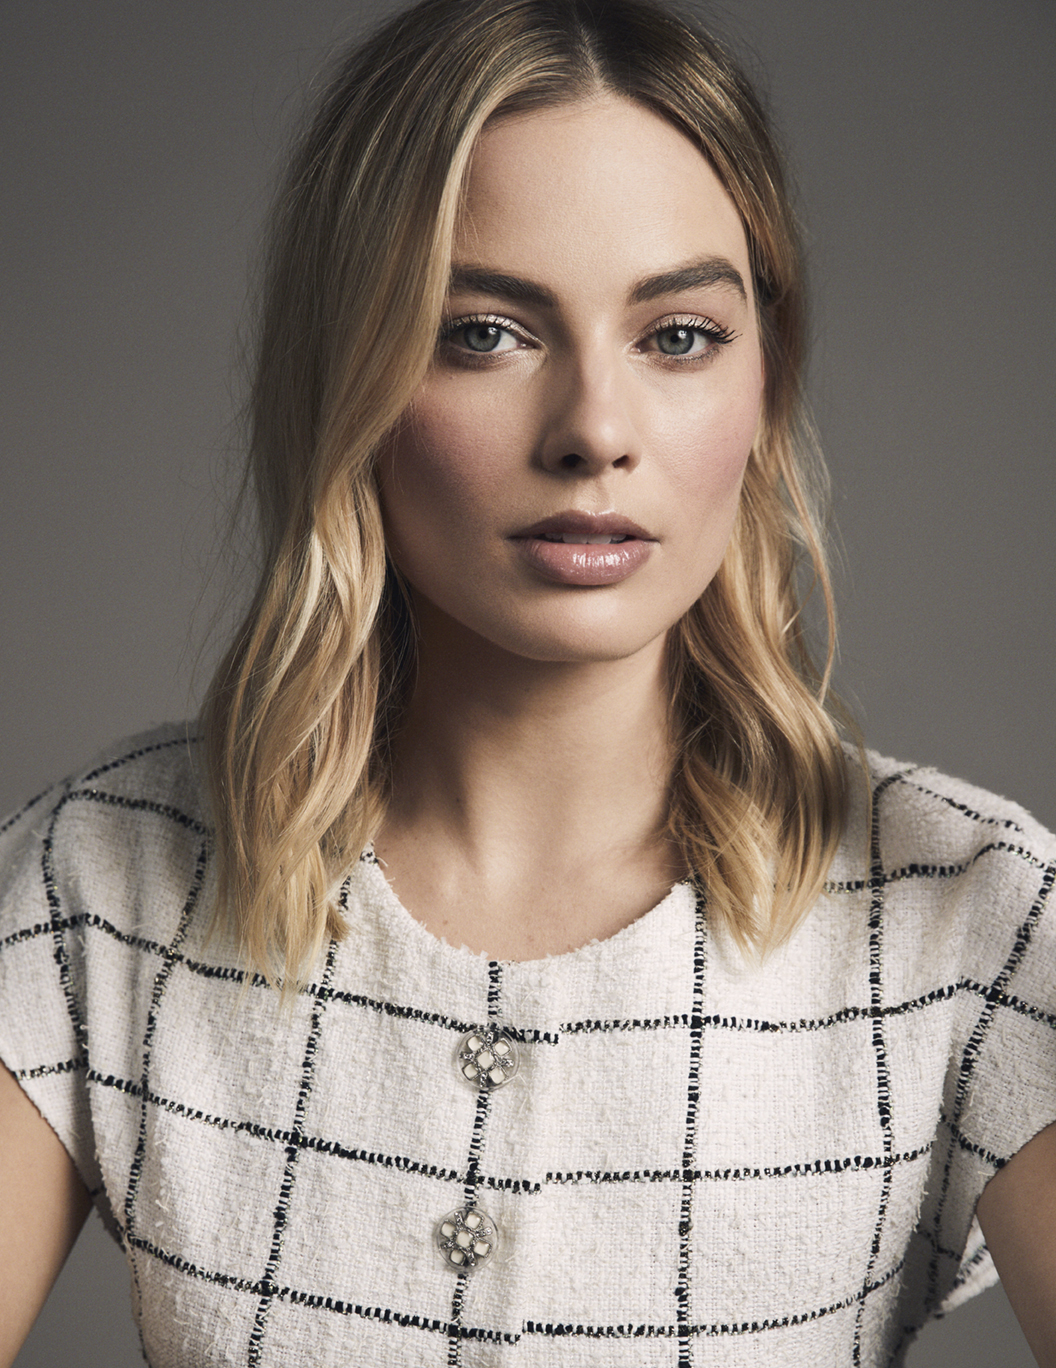 Chanel Margot Robbie Fashionela